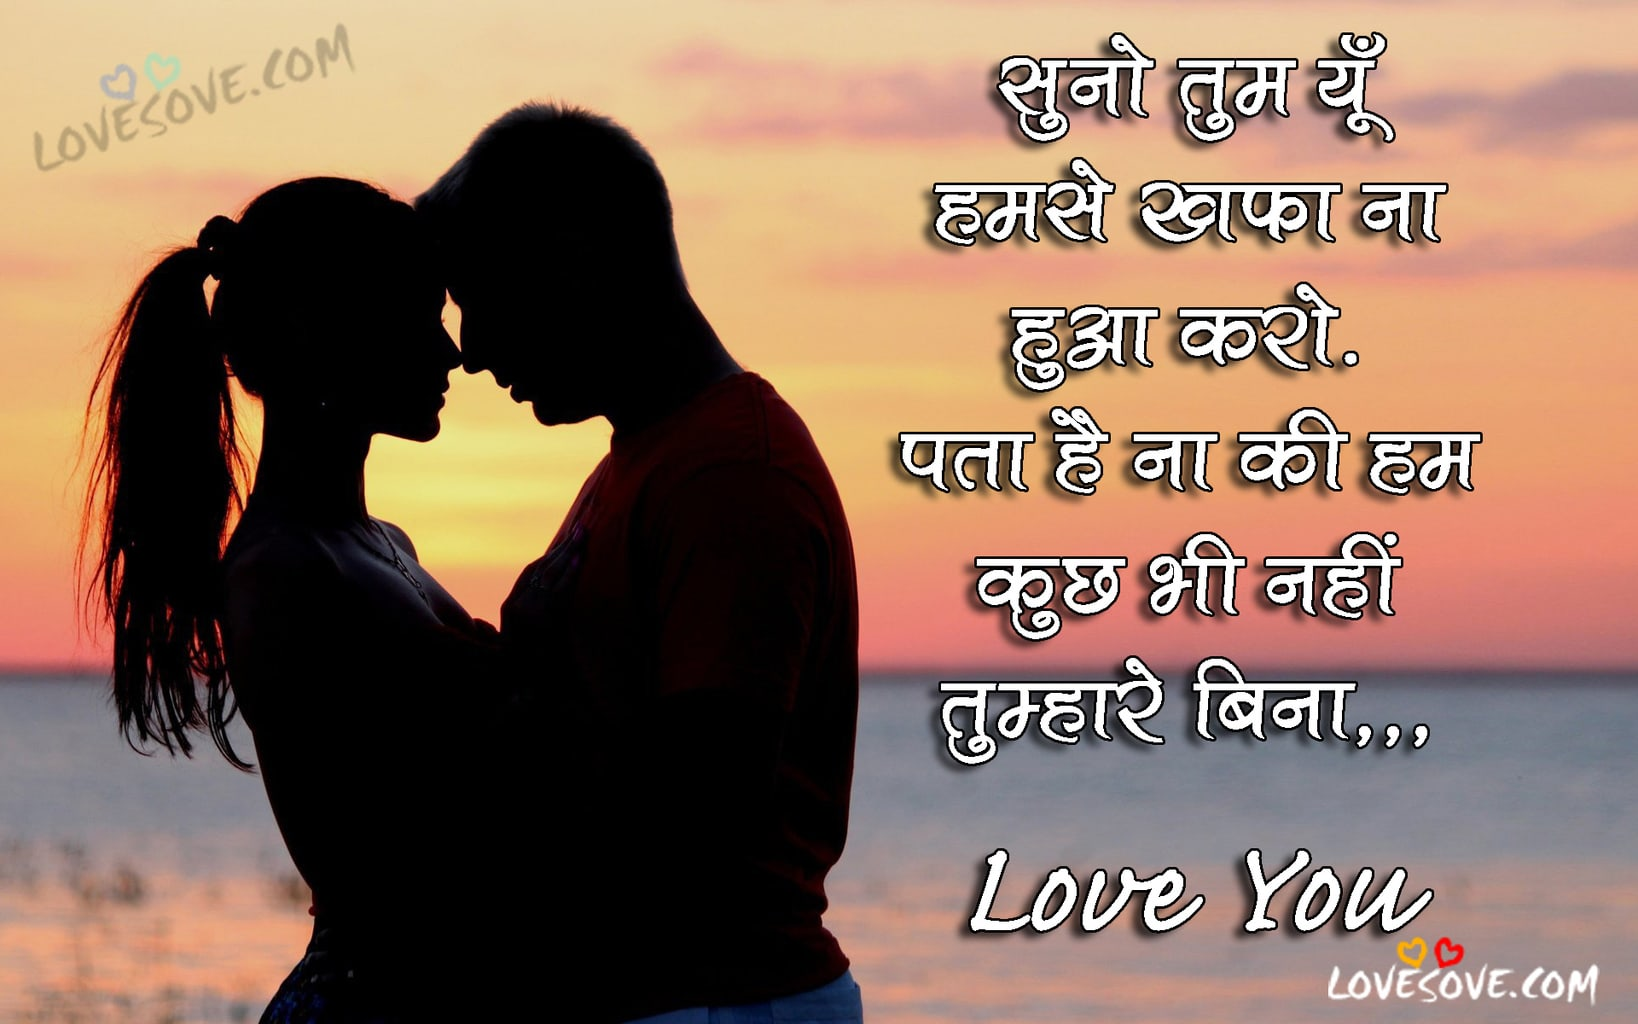 Best Hindi Love Quotes Status Images Pyar Mohabbat Shayari